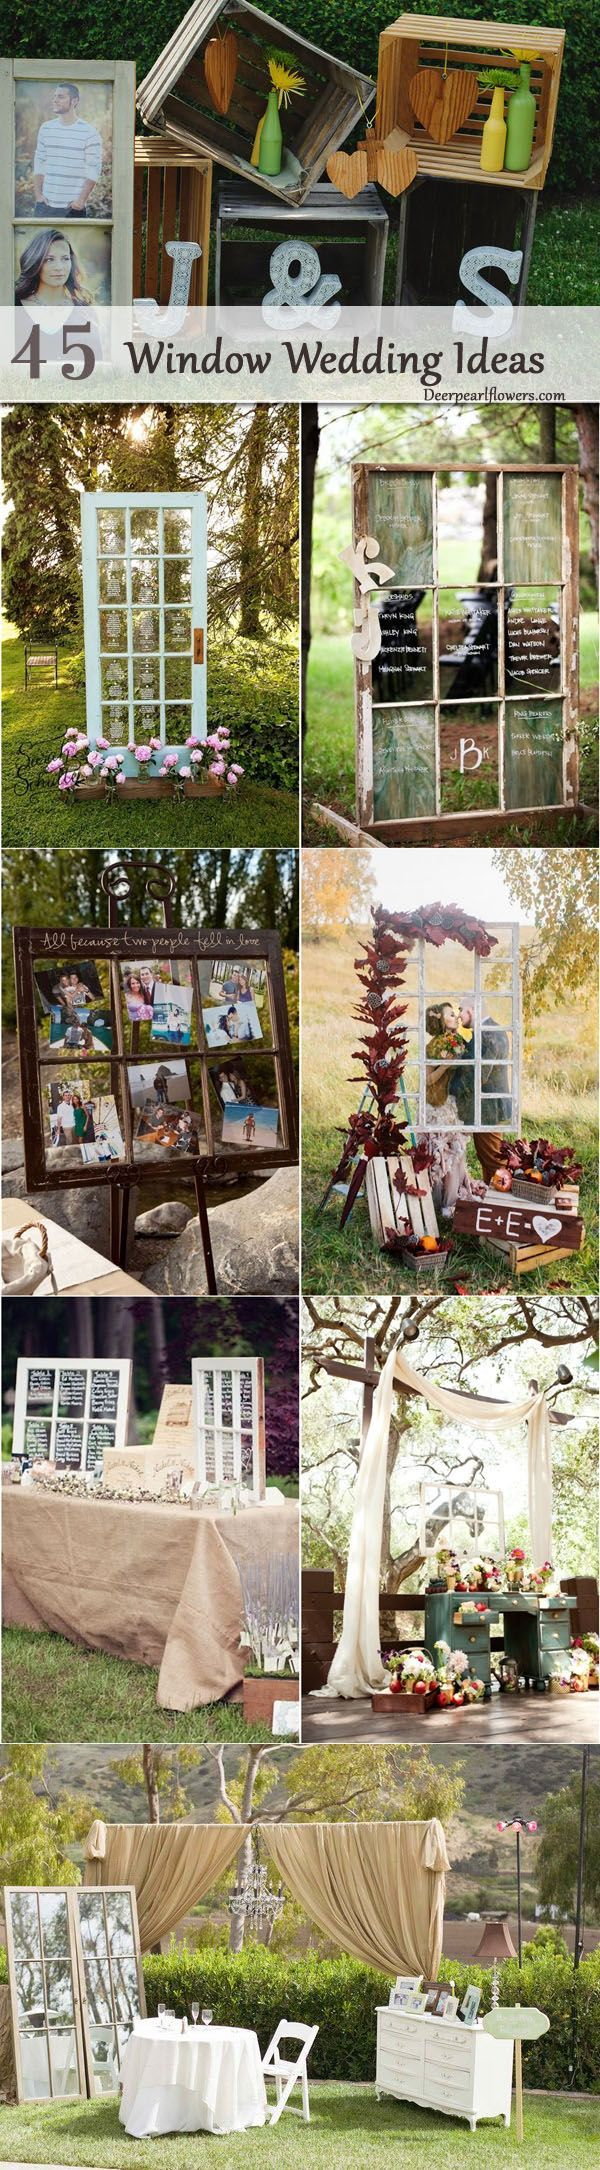 Wedding decorations ideas at home january 2019  best Wedding ideas images on Pinterest  Wedding ideas Rustic